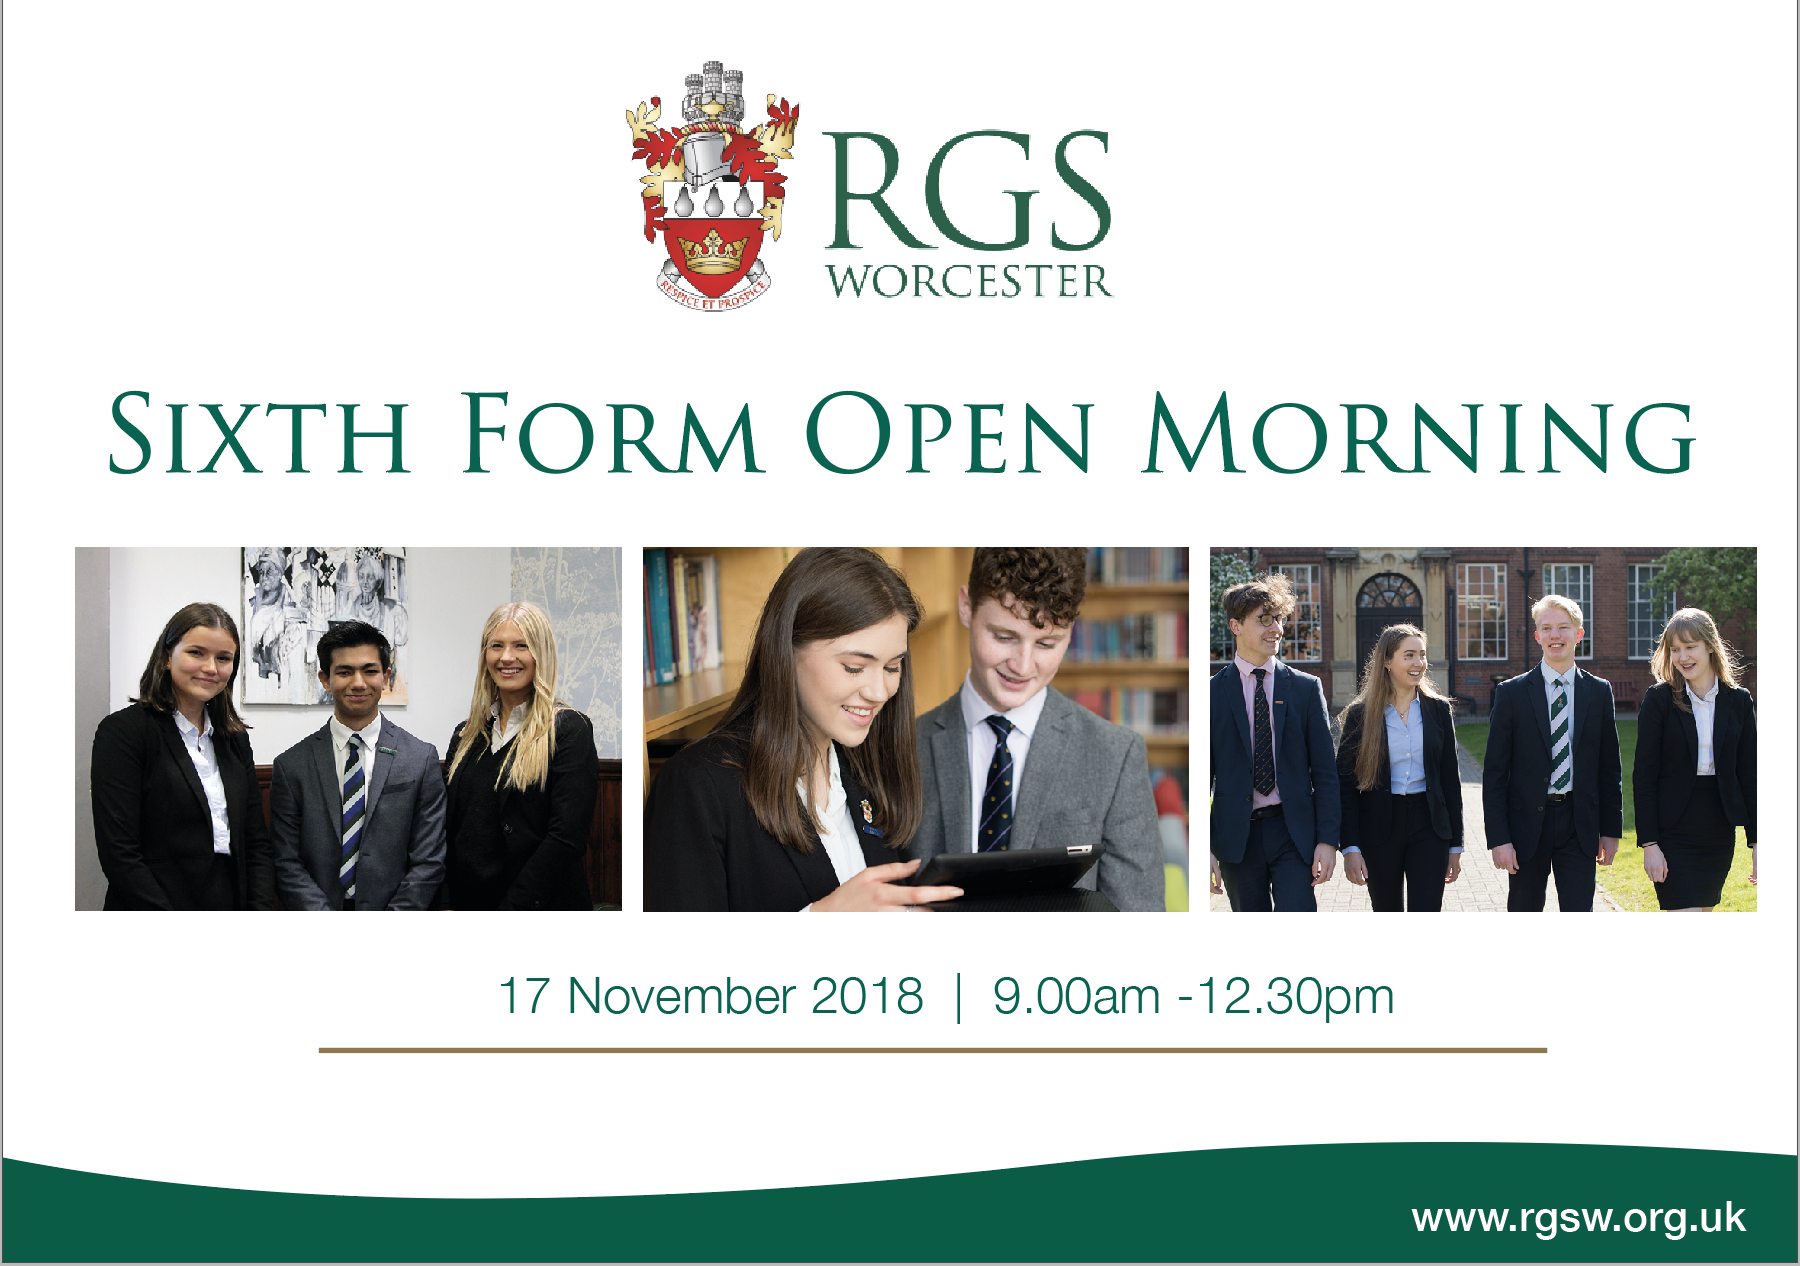 Sixth Form Open Morning at RGS Worcester